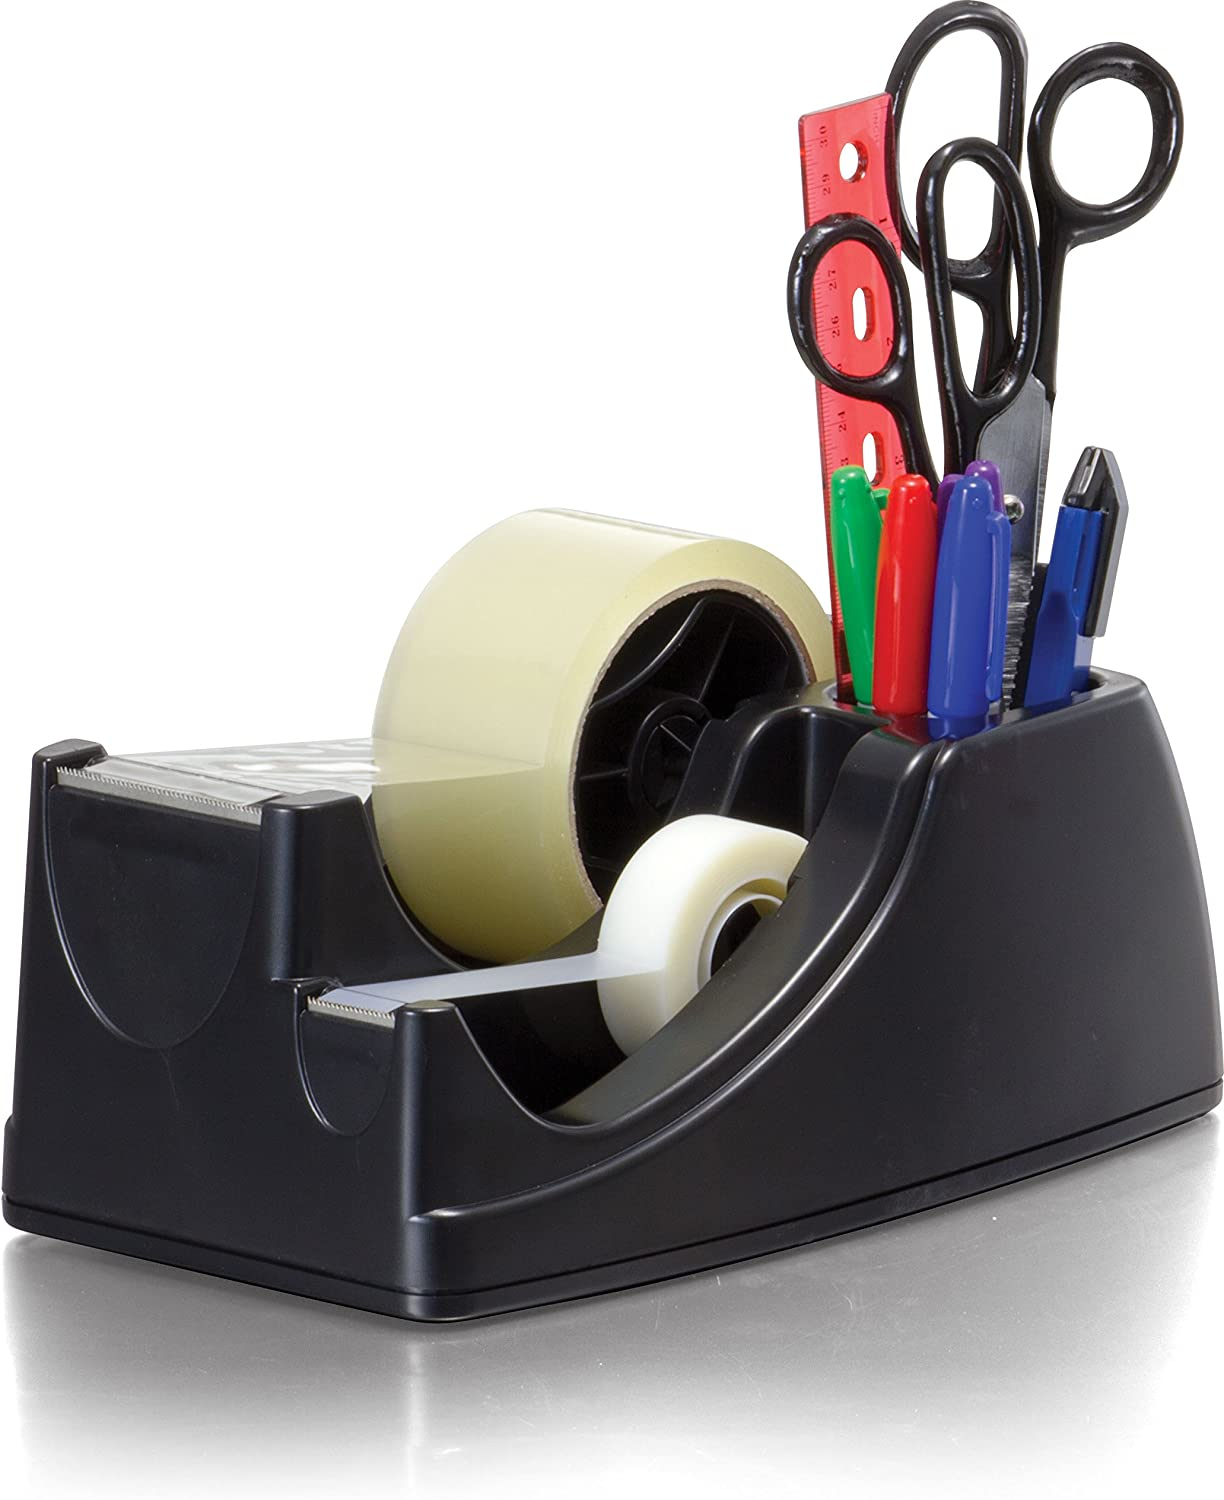 Officemate Heavy Duty Outlet SALE Weighted 2-in-1 Tape Recycled B Dispenser Regular store